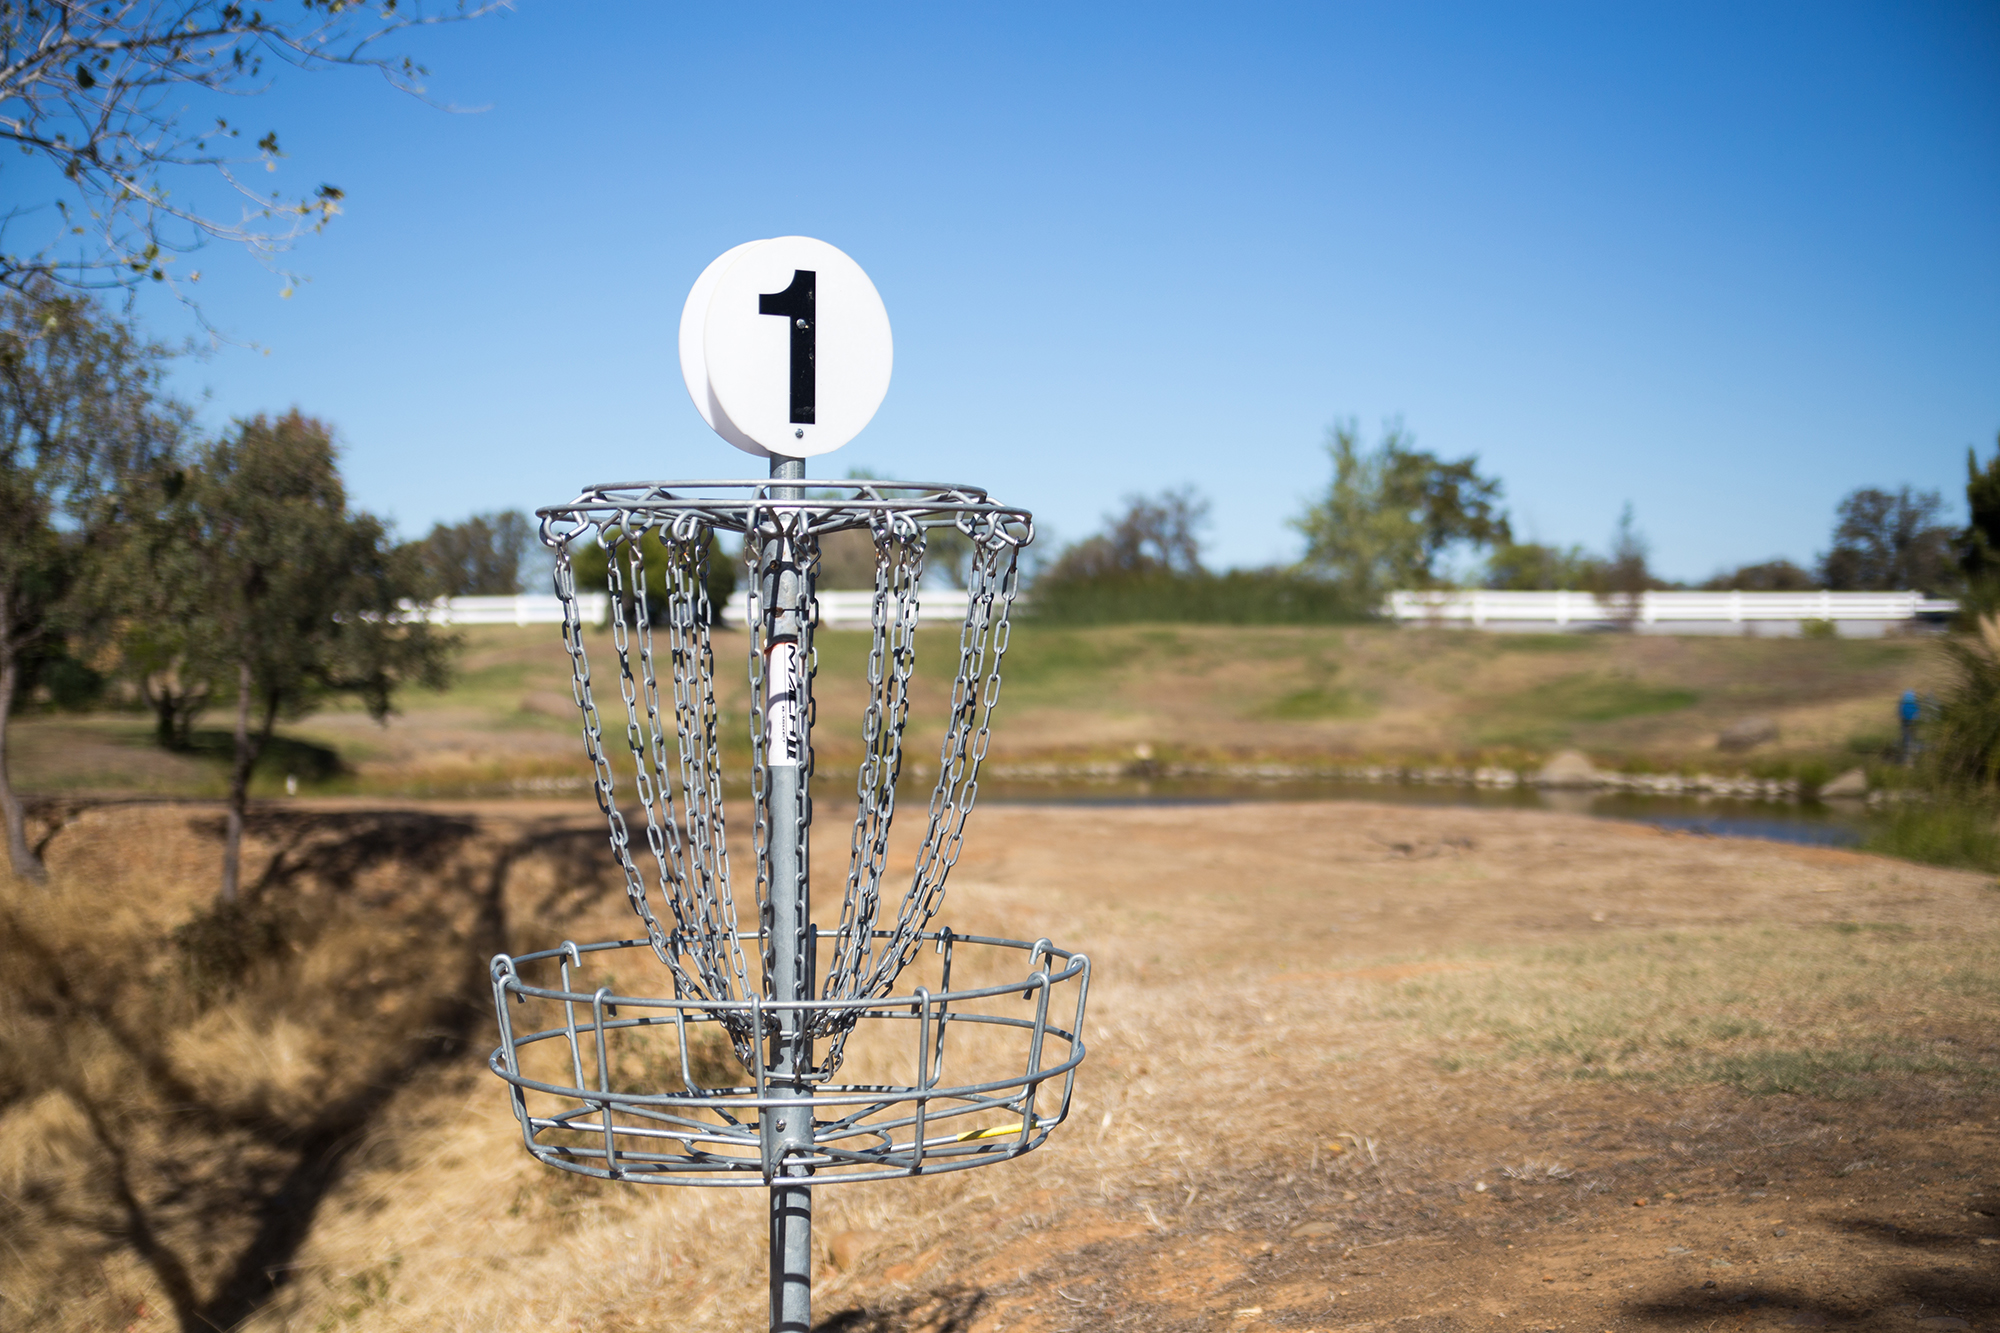 Disc Golf Course - Disc Golf, commonly known as frisbee golf, is easy to learn and FUN to play, and it is suitable for all ages. Played like traditional ball golf, Disc Golf involves throwing a disc from a tee off point to a target (usually a metal basket with chains). Players will keep count of throws (or strokes); the lowest number of strokes wins.  So, come play a round or two behind Goff Hall on our 9 hole course with 2 levels of difficulty.